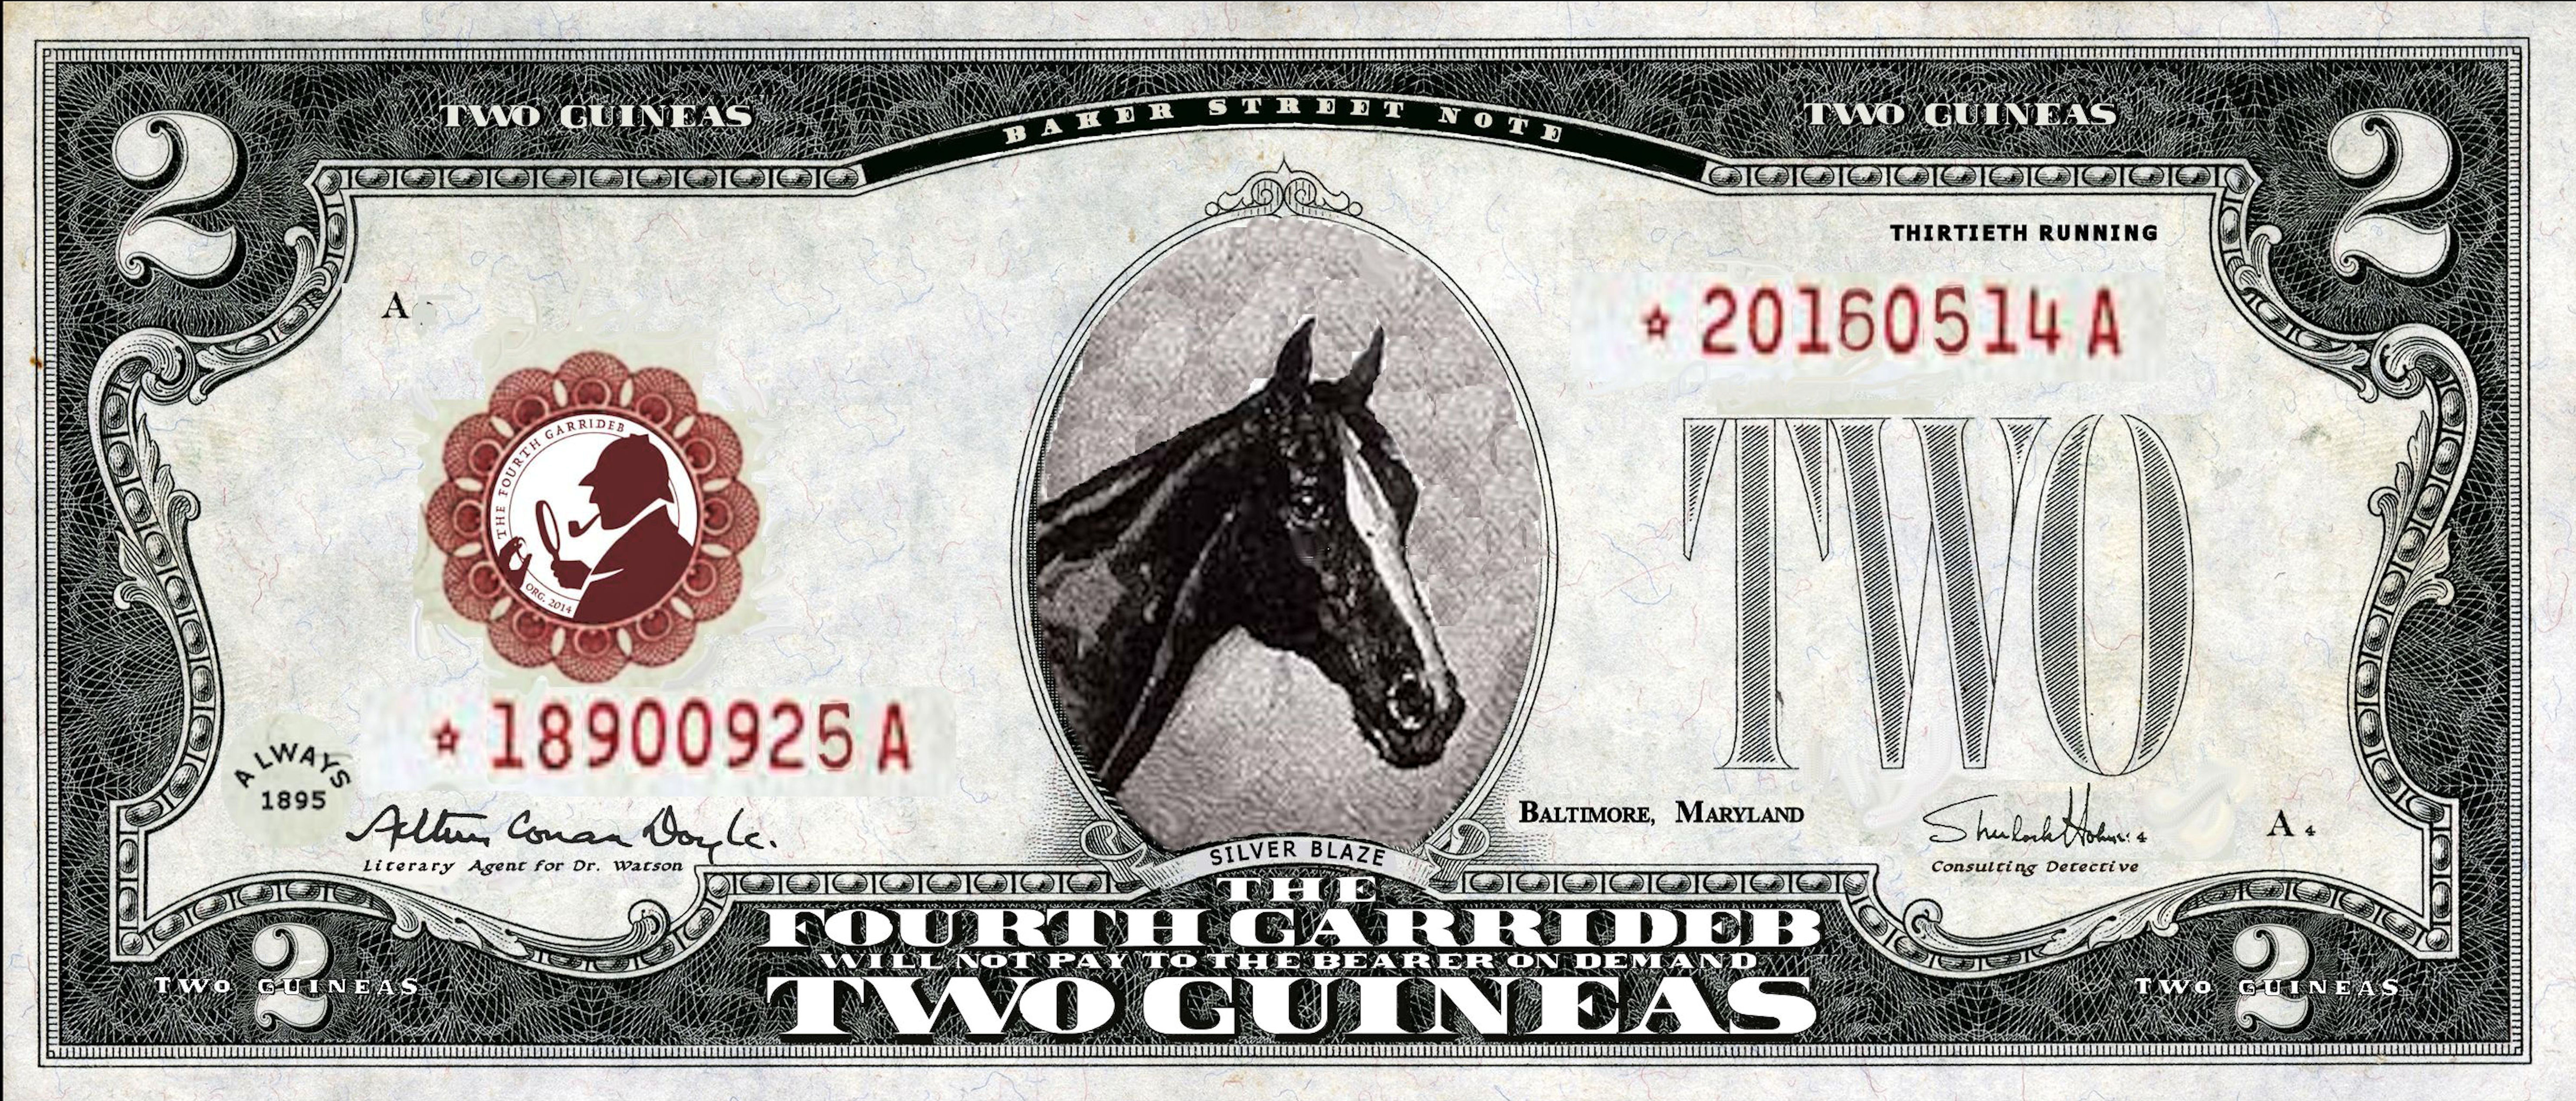 The 2016 Silver Blaze (Southern Division) 2 Guinea Banknote